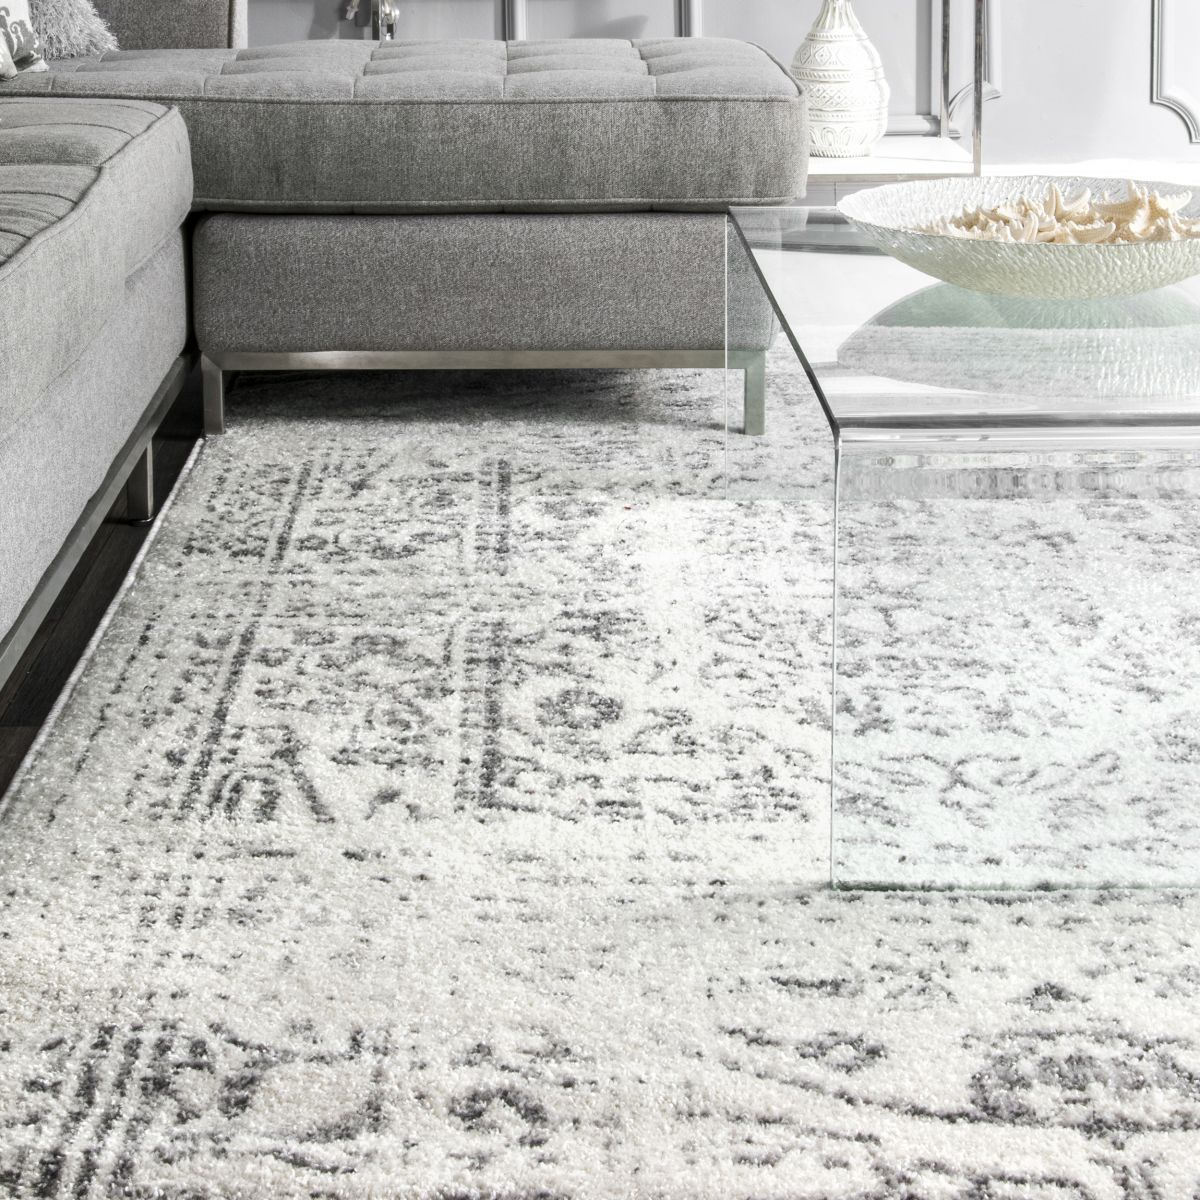 Granite Ring Around The Rosette Gray Rug In 2020 Area Rugs Cheap Area Room Rugs Rugs On Carpet